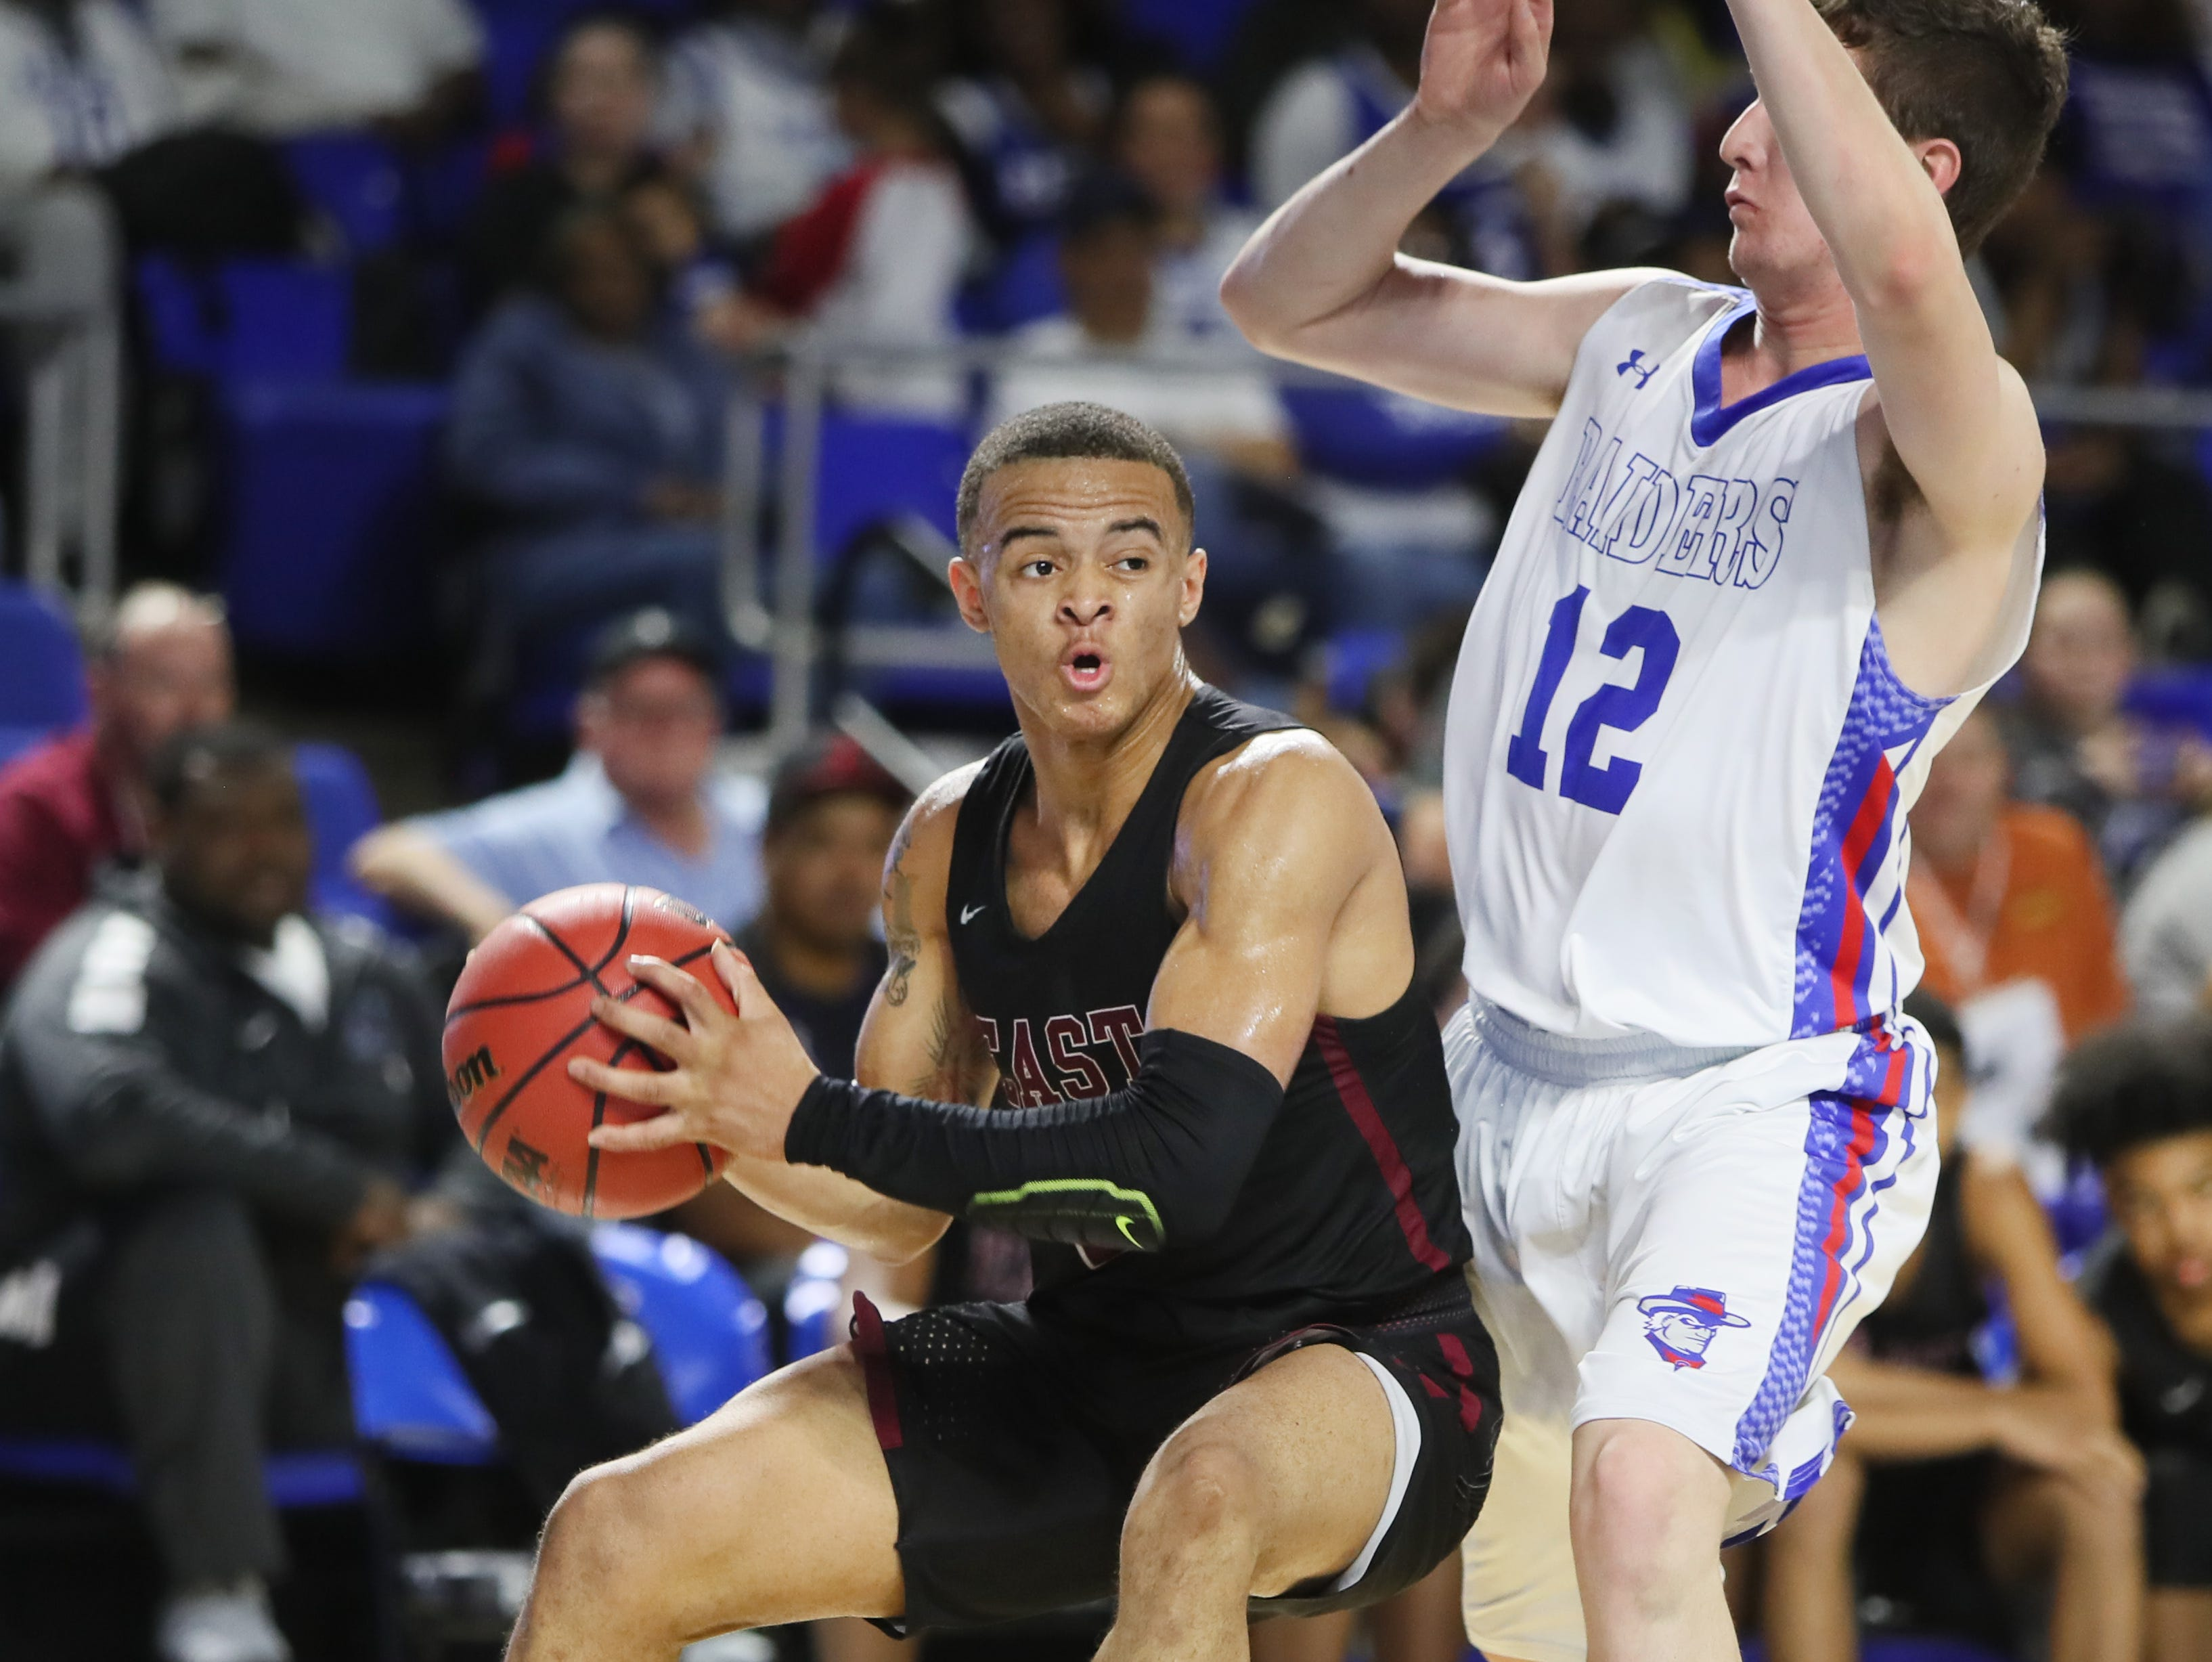 Memphis East's Antonio Thomas looks to pass the ball past Cleveland's Logan Colbaugh during the TSSAA Division I basketball state tournament at the Murphy Center in Murfreesboro, Tenn. on Thursday, March 14, 2019.